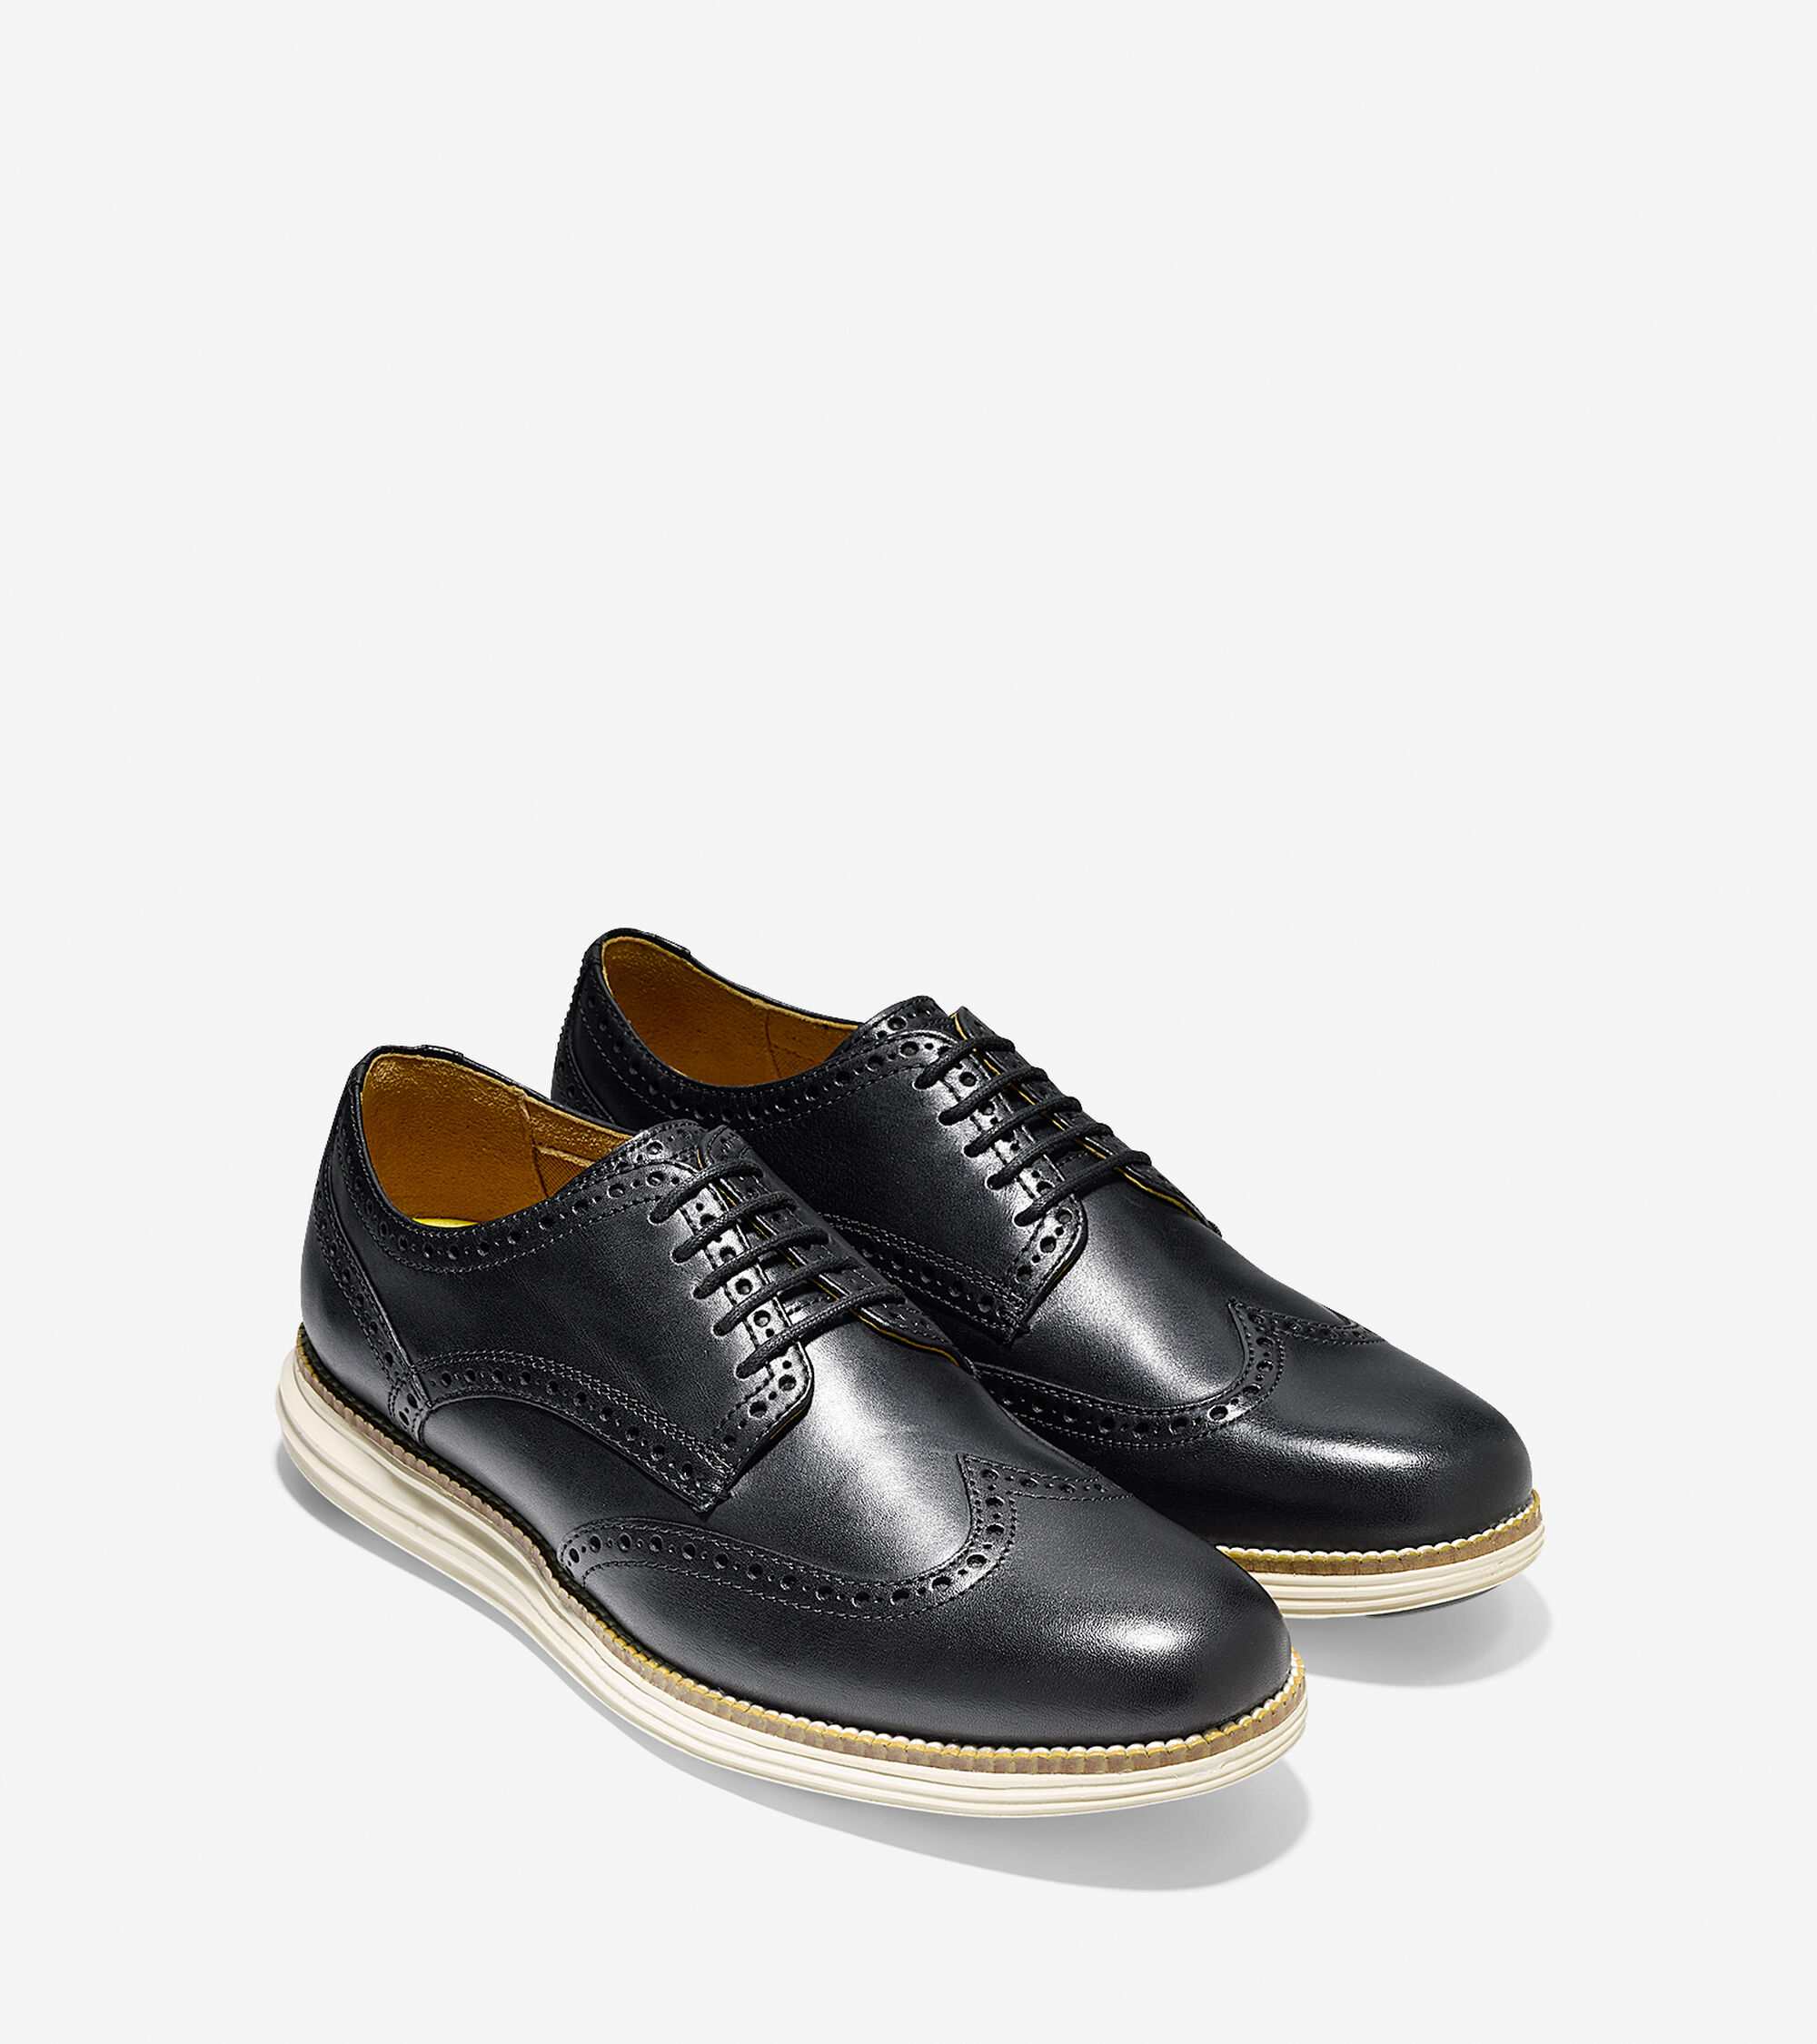 Black And White Wingtip Shoes For Women